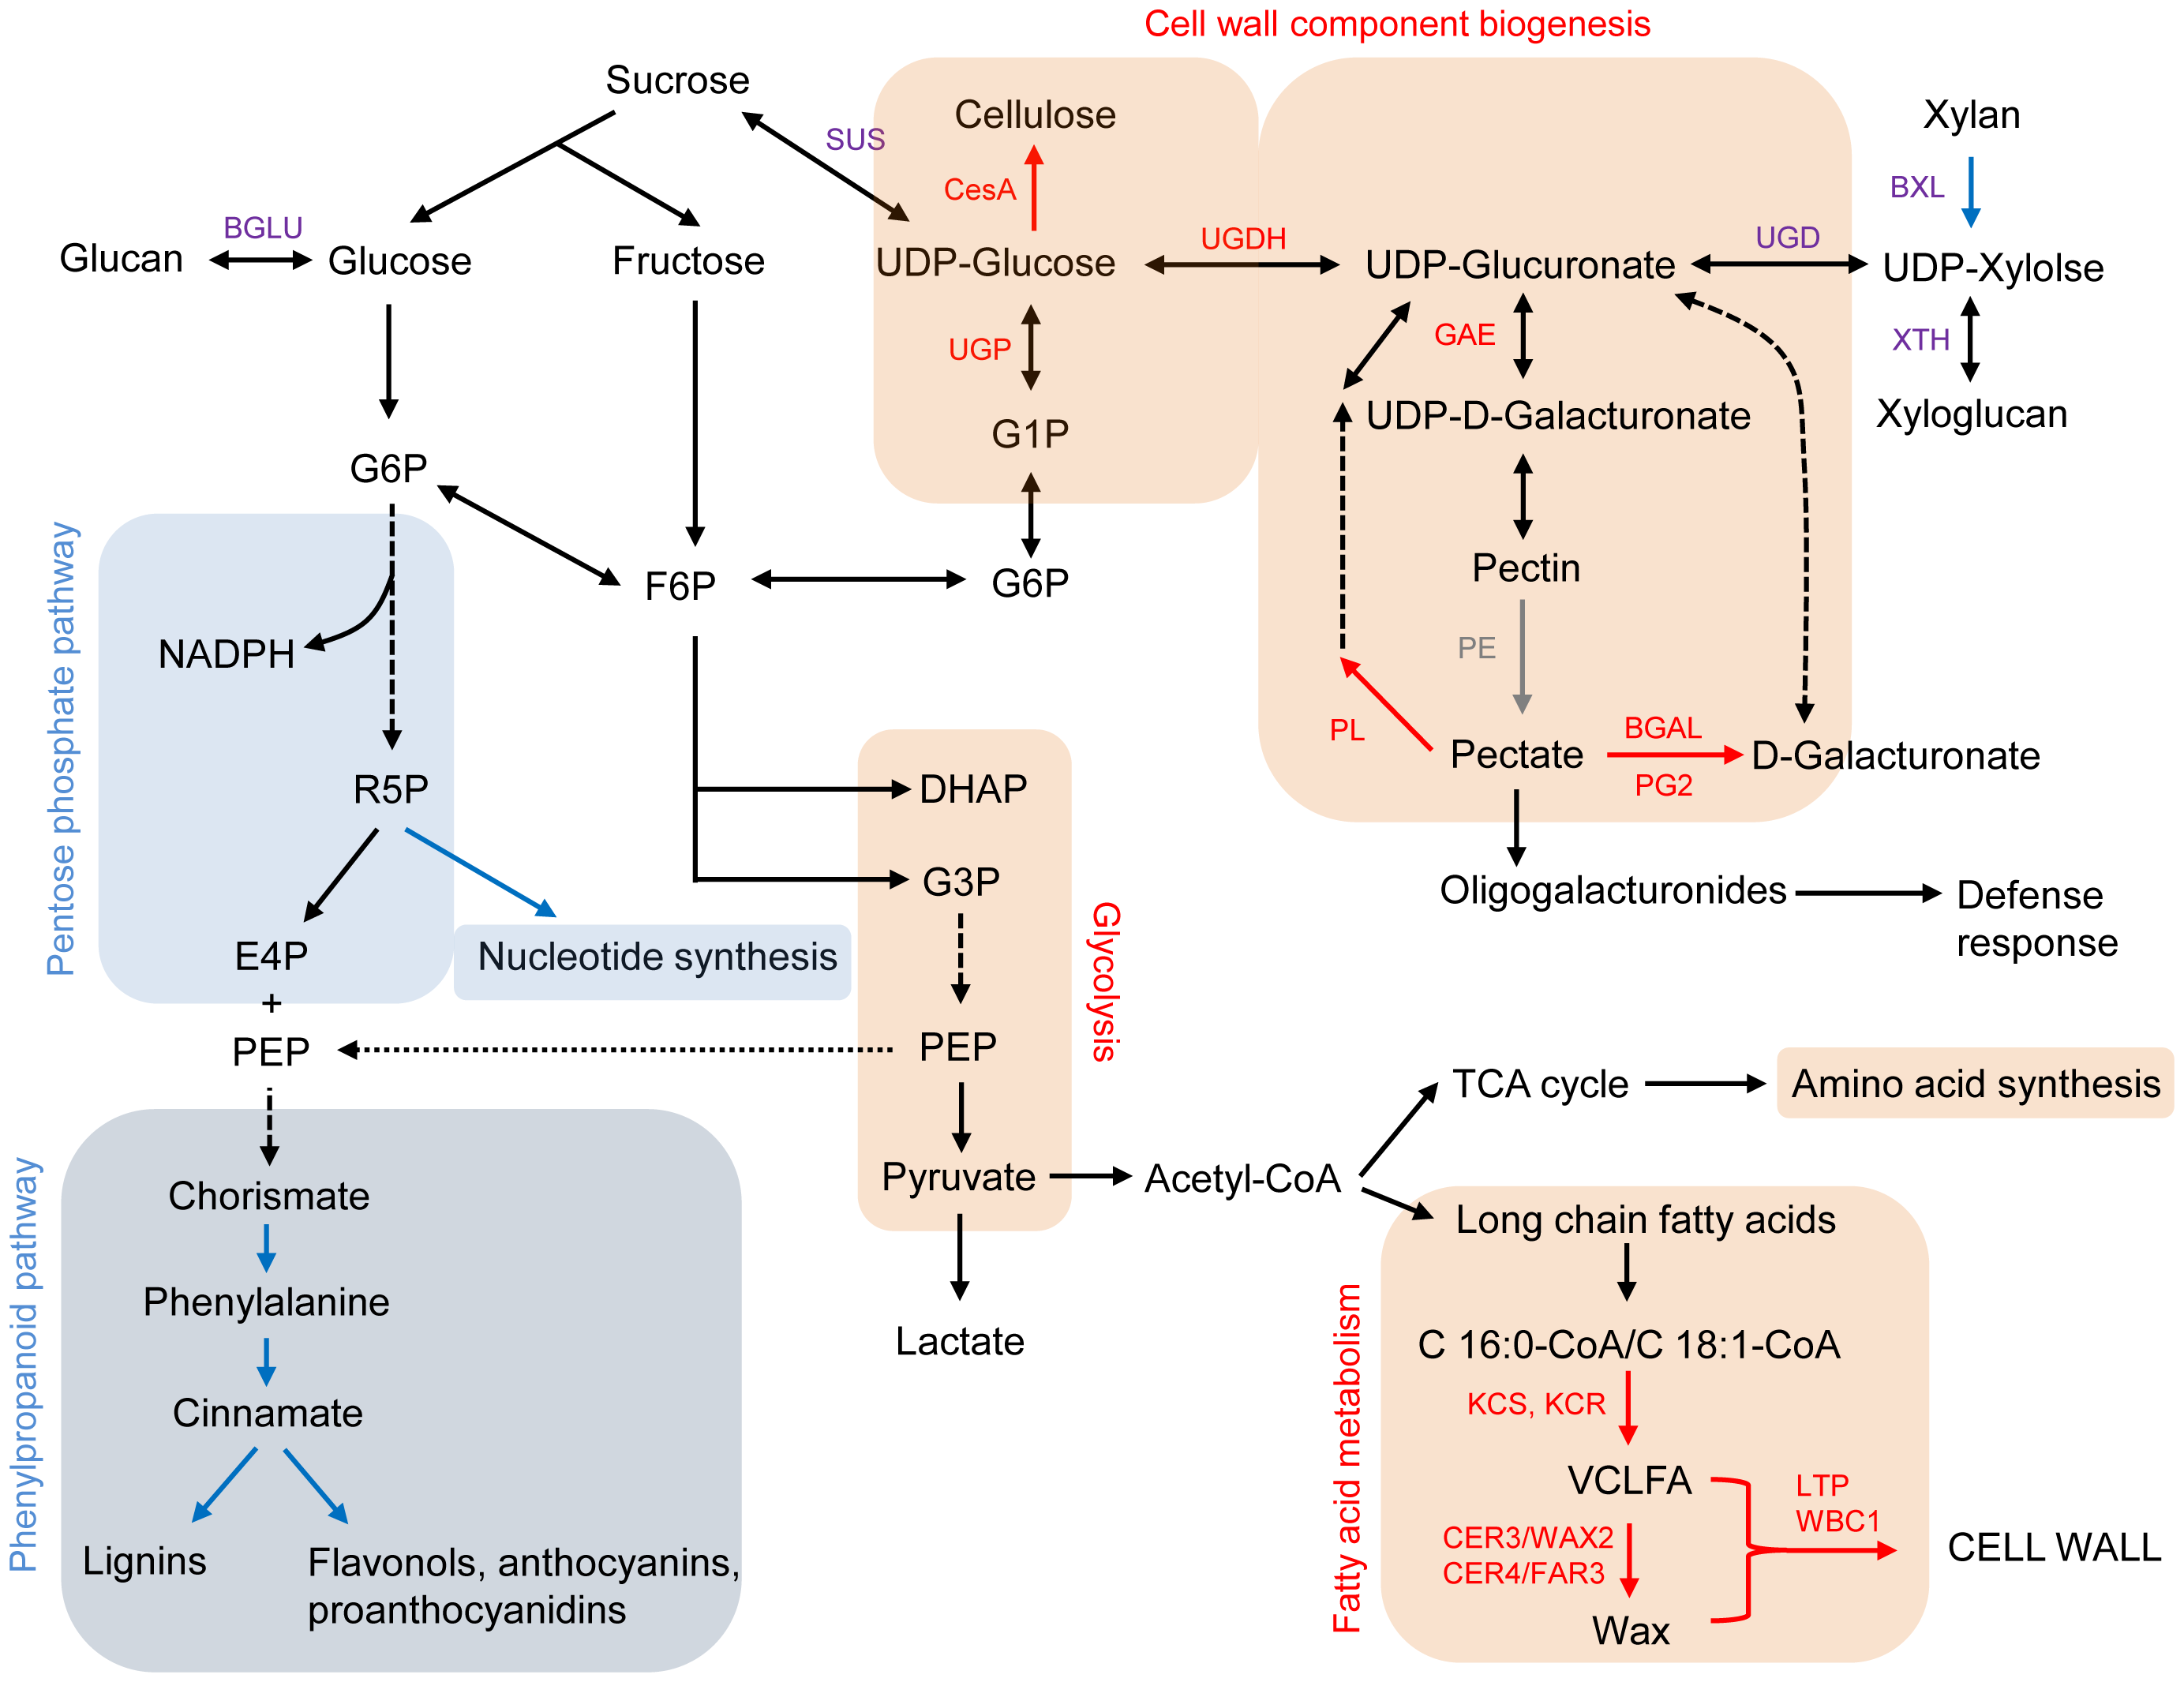 Carbohydrate and fatty acid metabolisms, focusing on cell wall biosynthesis <em class=&quot;ref&quot;>[68]</em>–<em class=&quot;ref&quot;>[70]</em>.